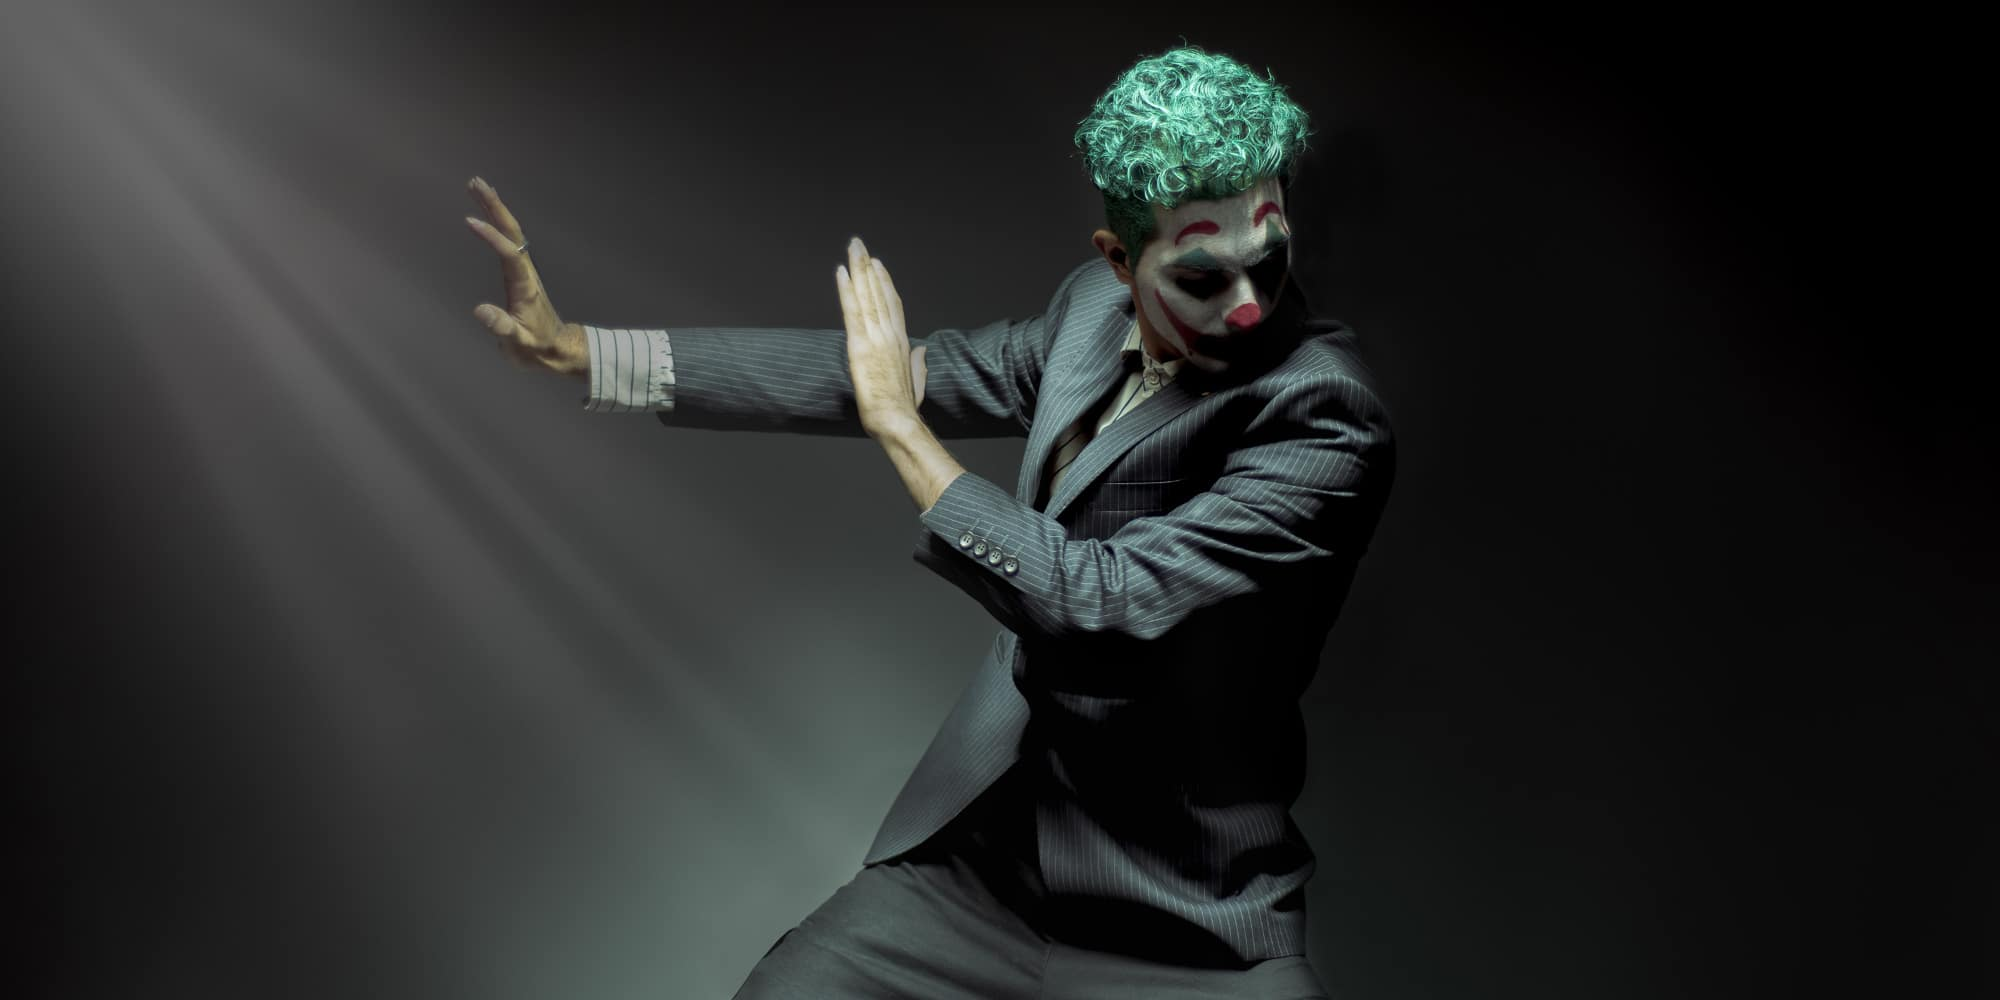 a man who has become the Joker